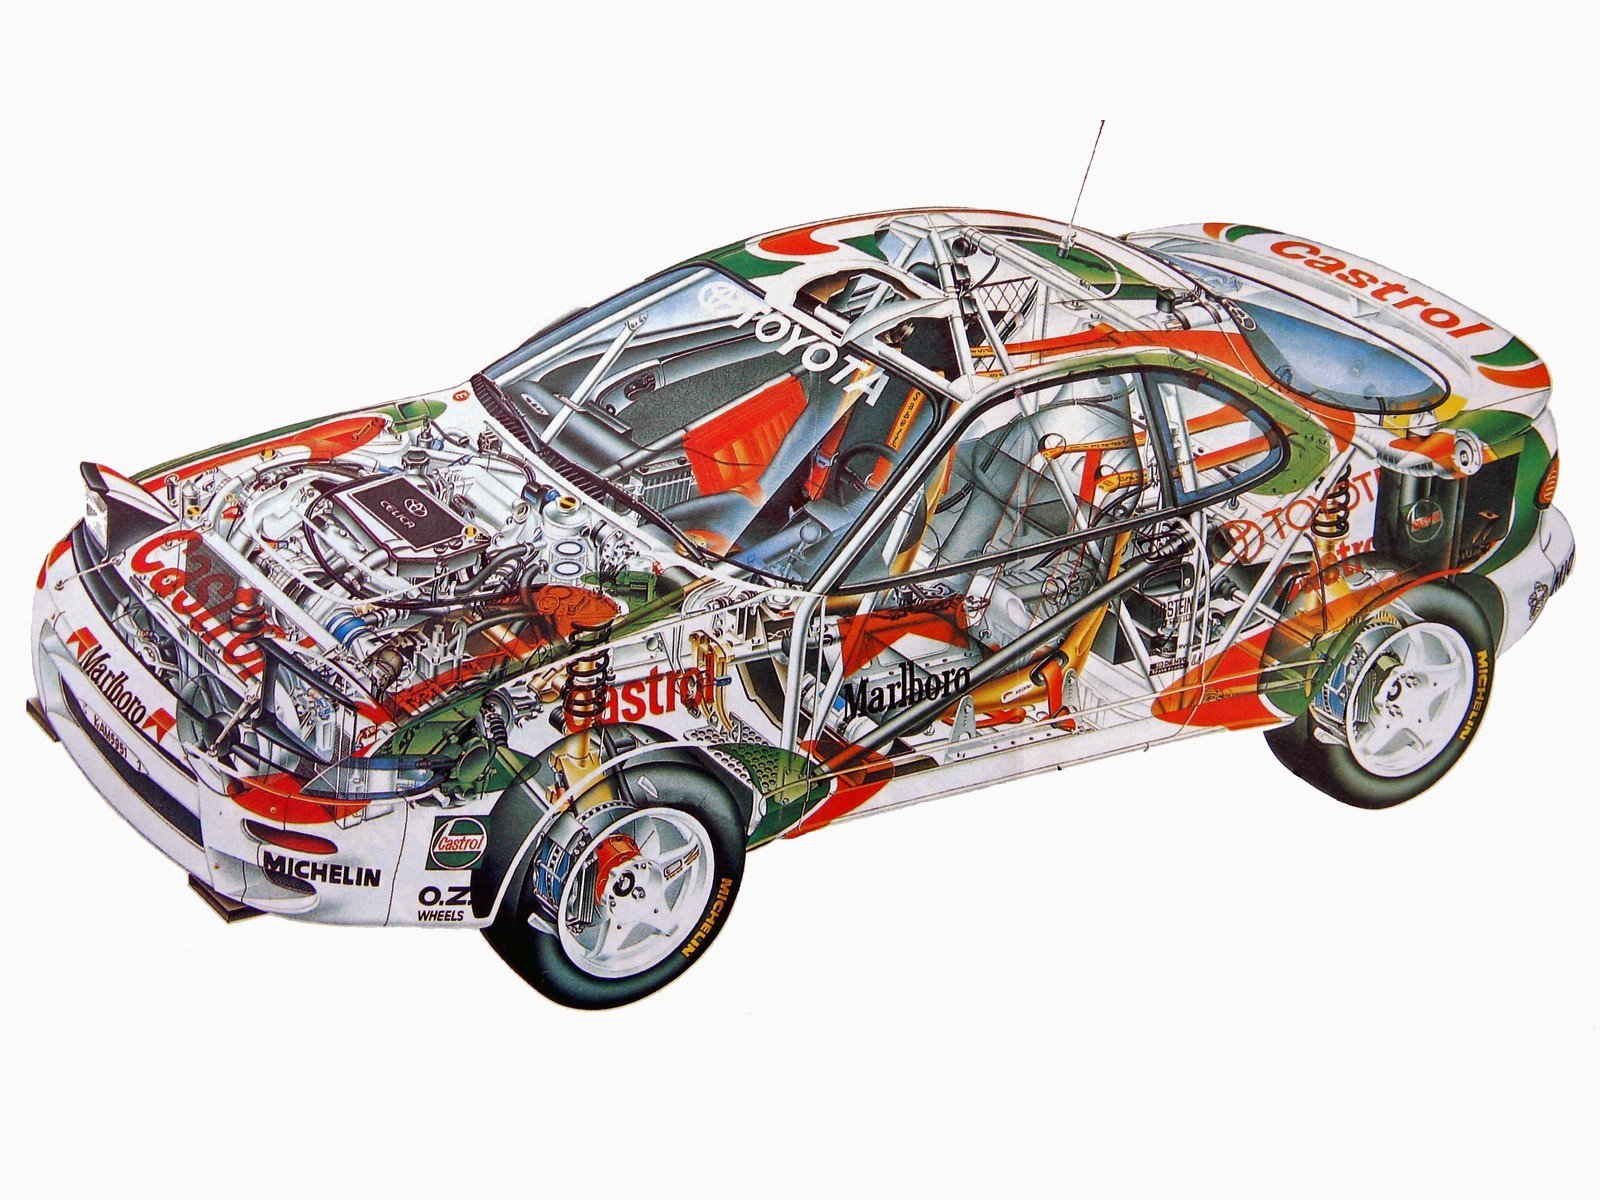 sportcars cutaway technical rally cars toyota celica turbo